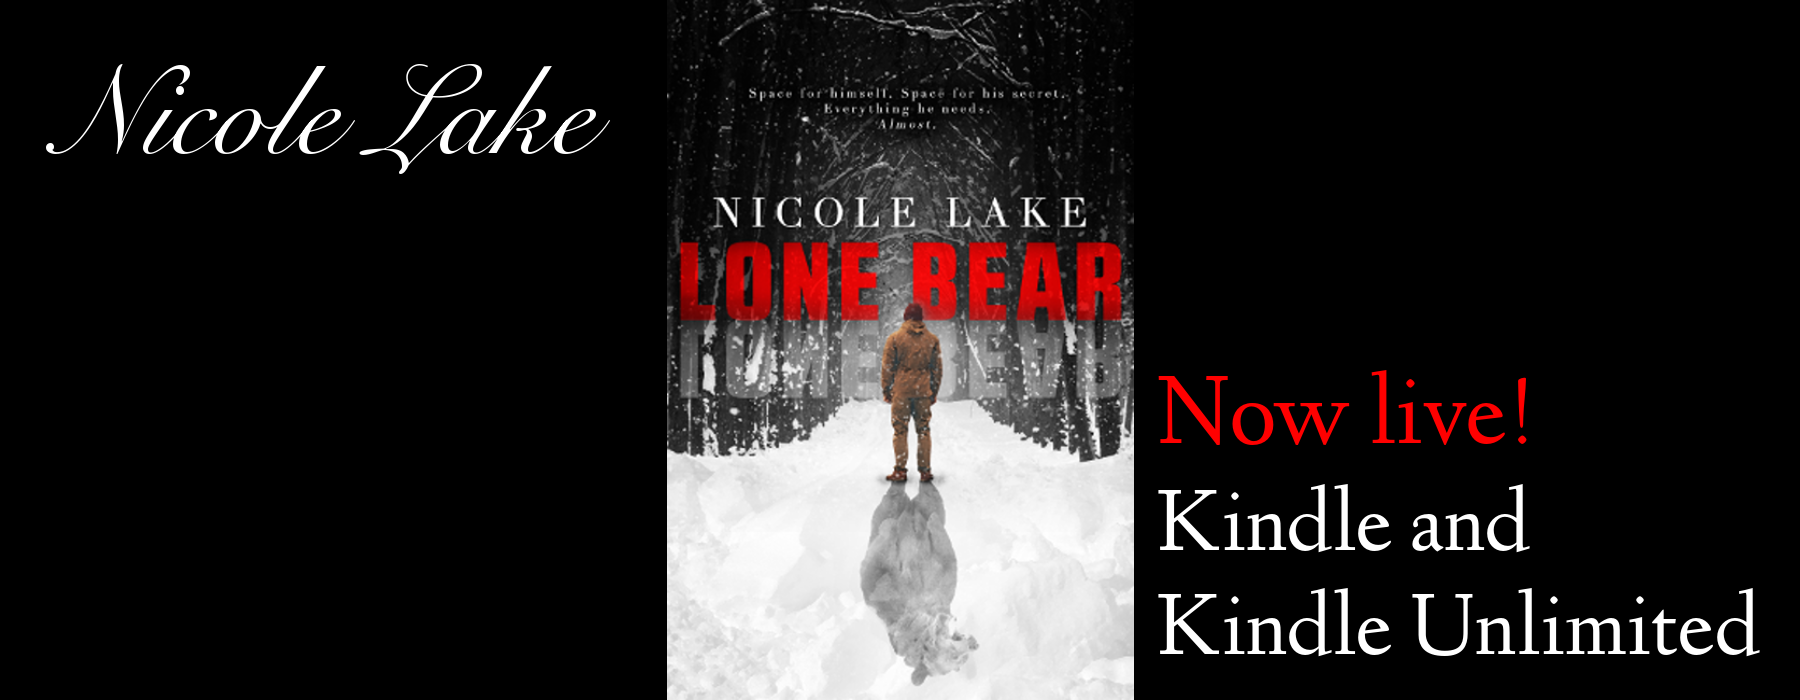 Lone Bear is live!